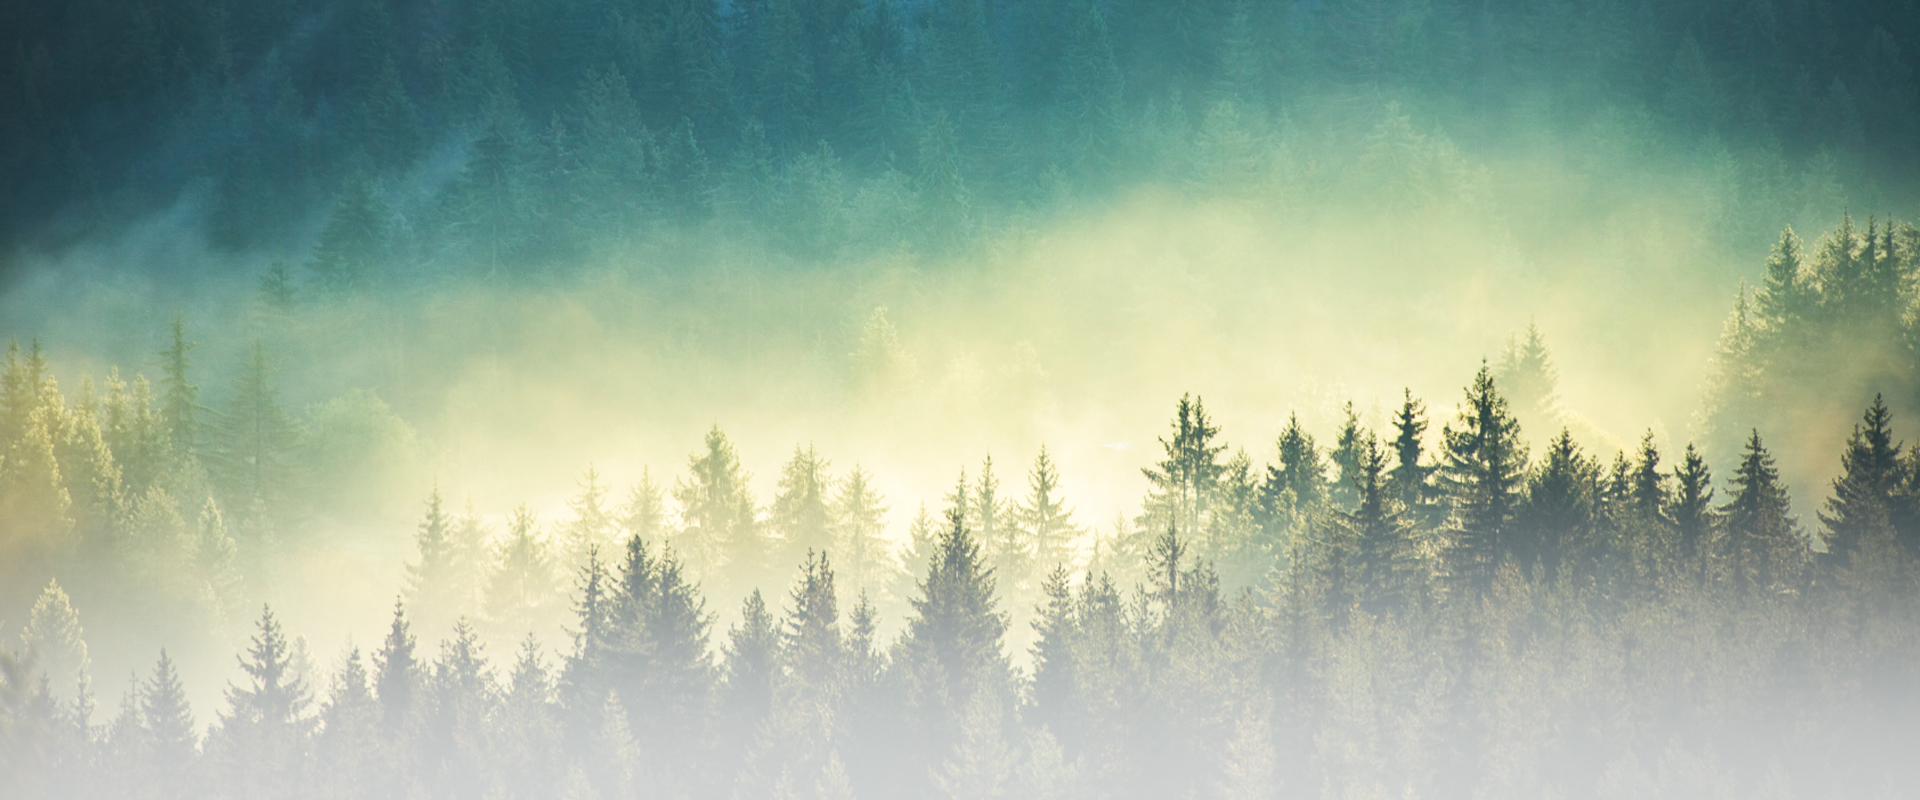 Mist coming off a green forest